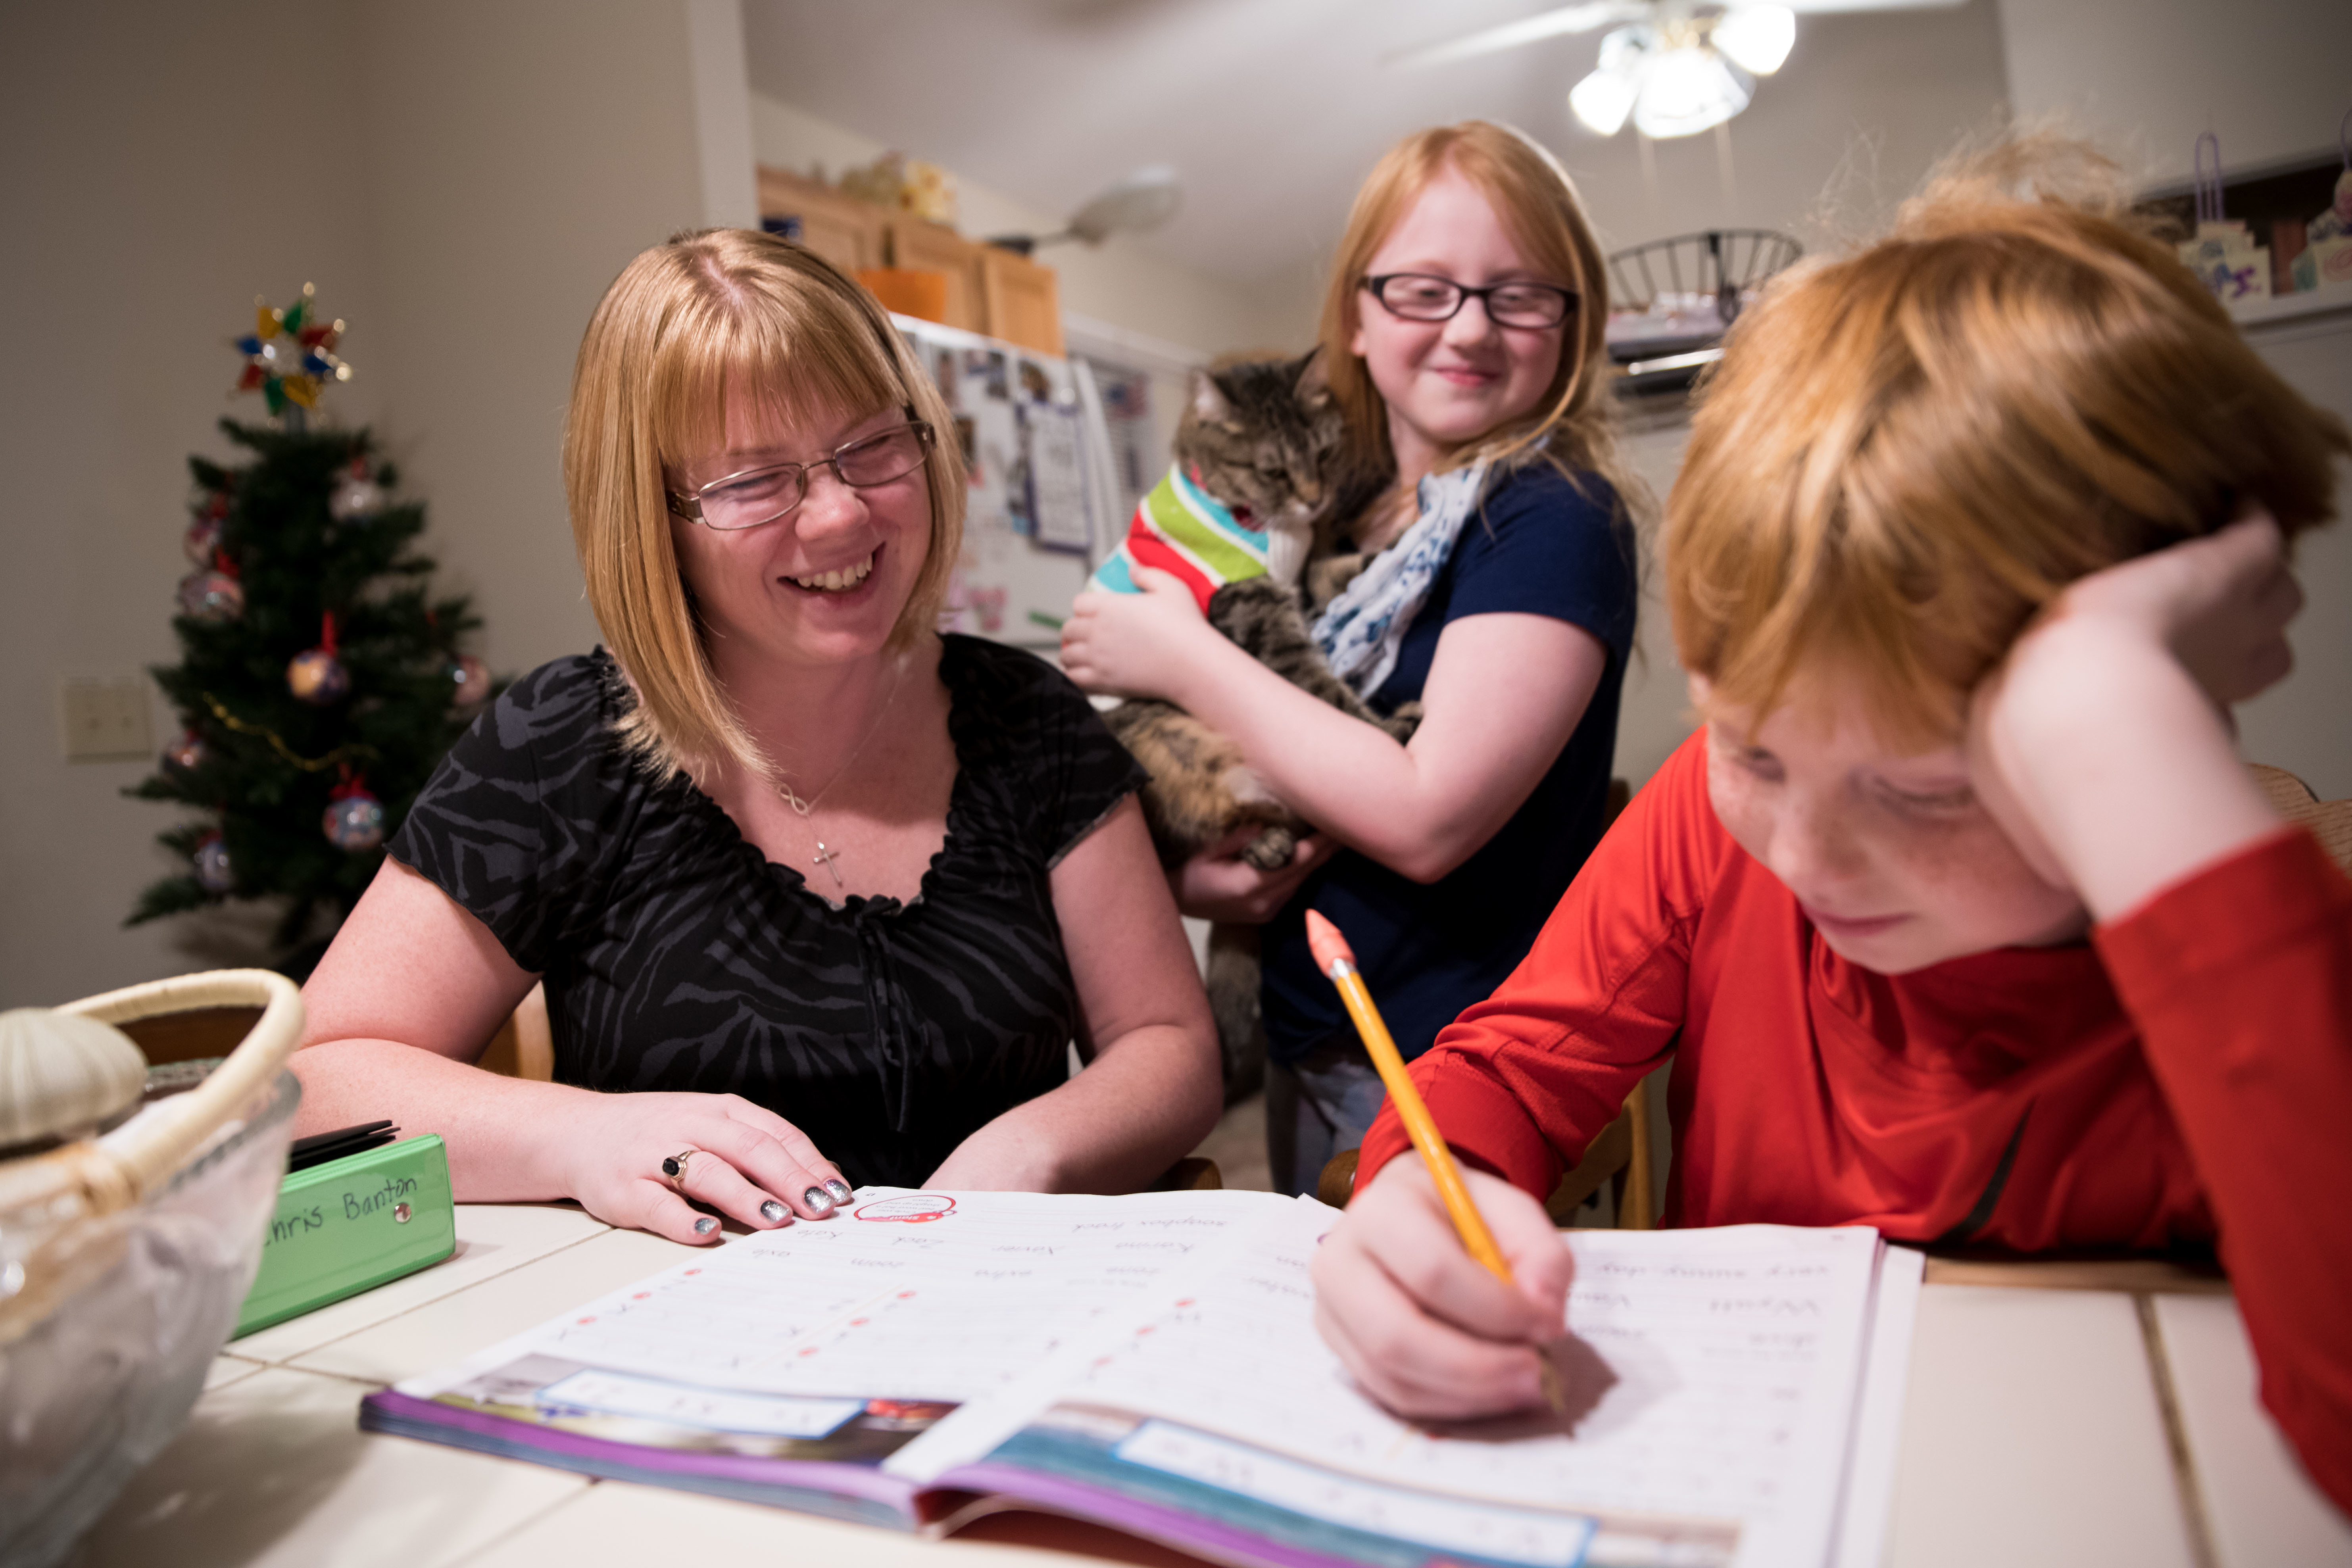 Veronica Banton helps her son, Chris, with homework as her daughter Sara looks on in their home Thursday, Nov. 15, 2018 in Lexington, S.C.